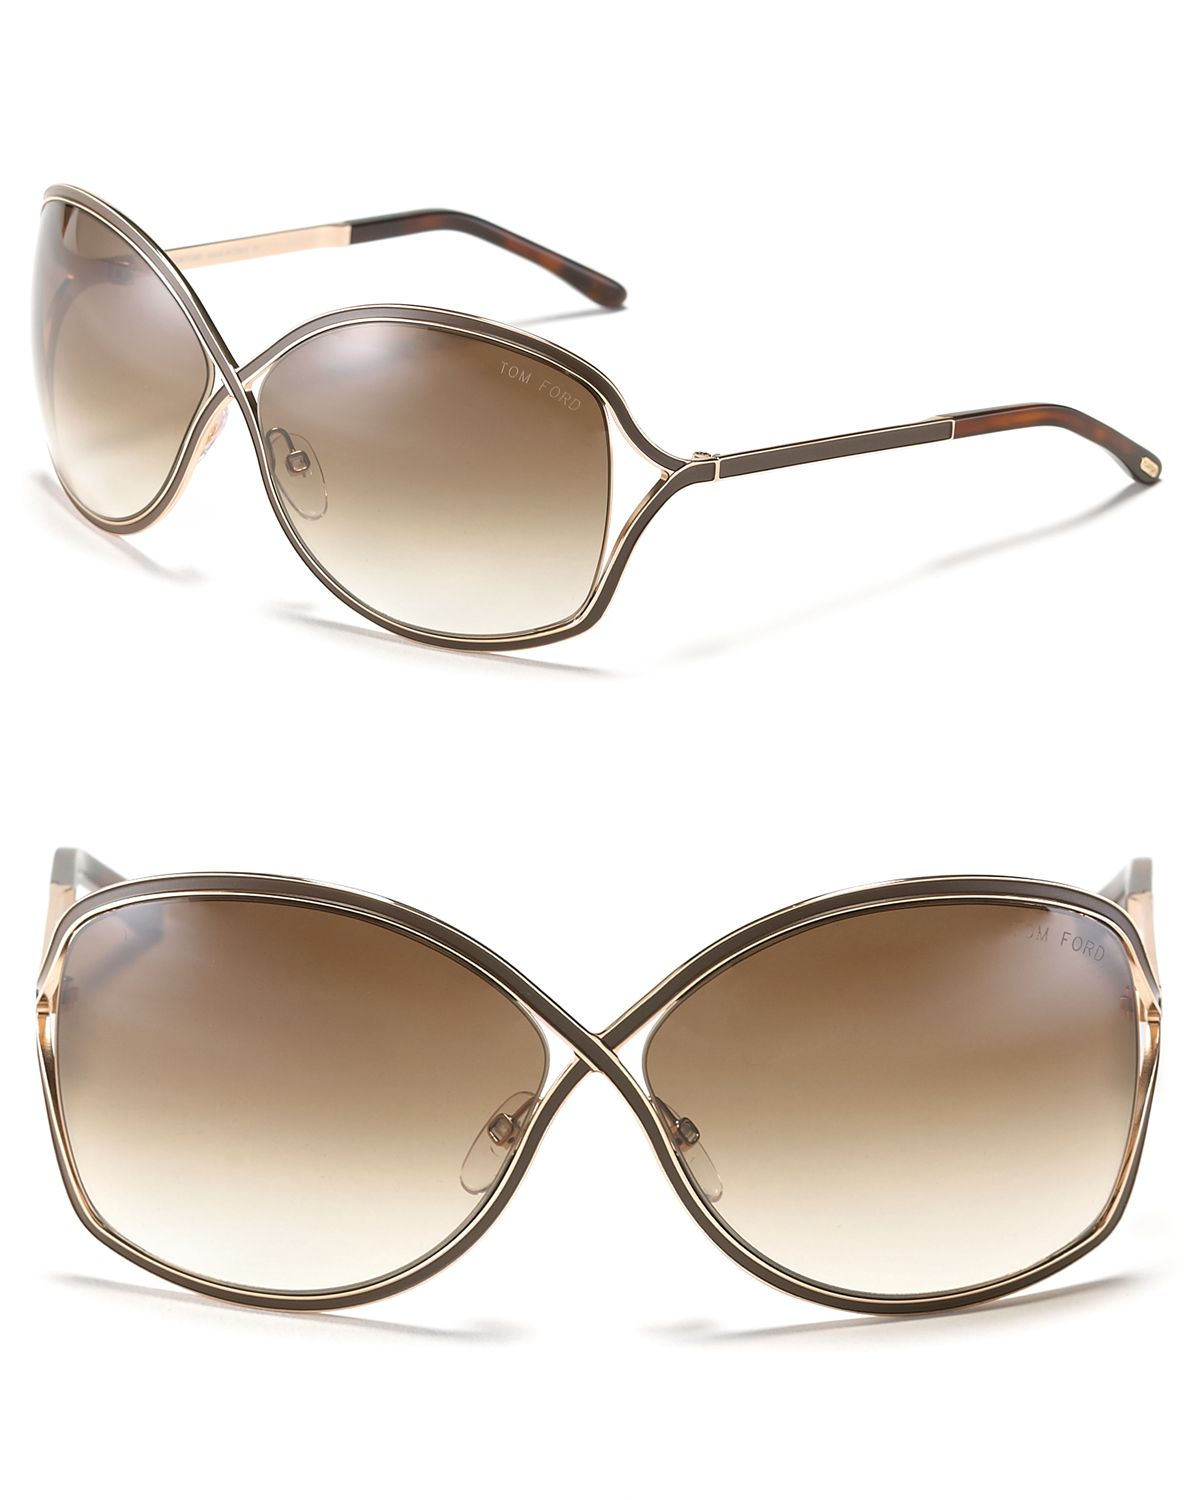 a54d45cff533c Tom Ford Rickie Cross Sunglasses in Pink - Lyst